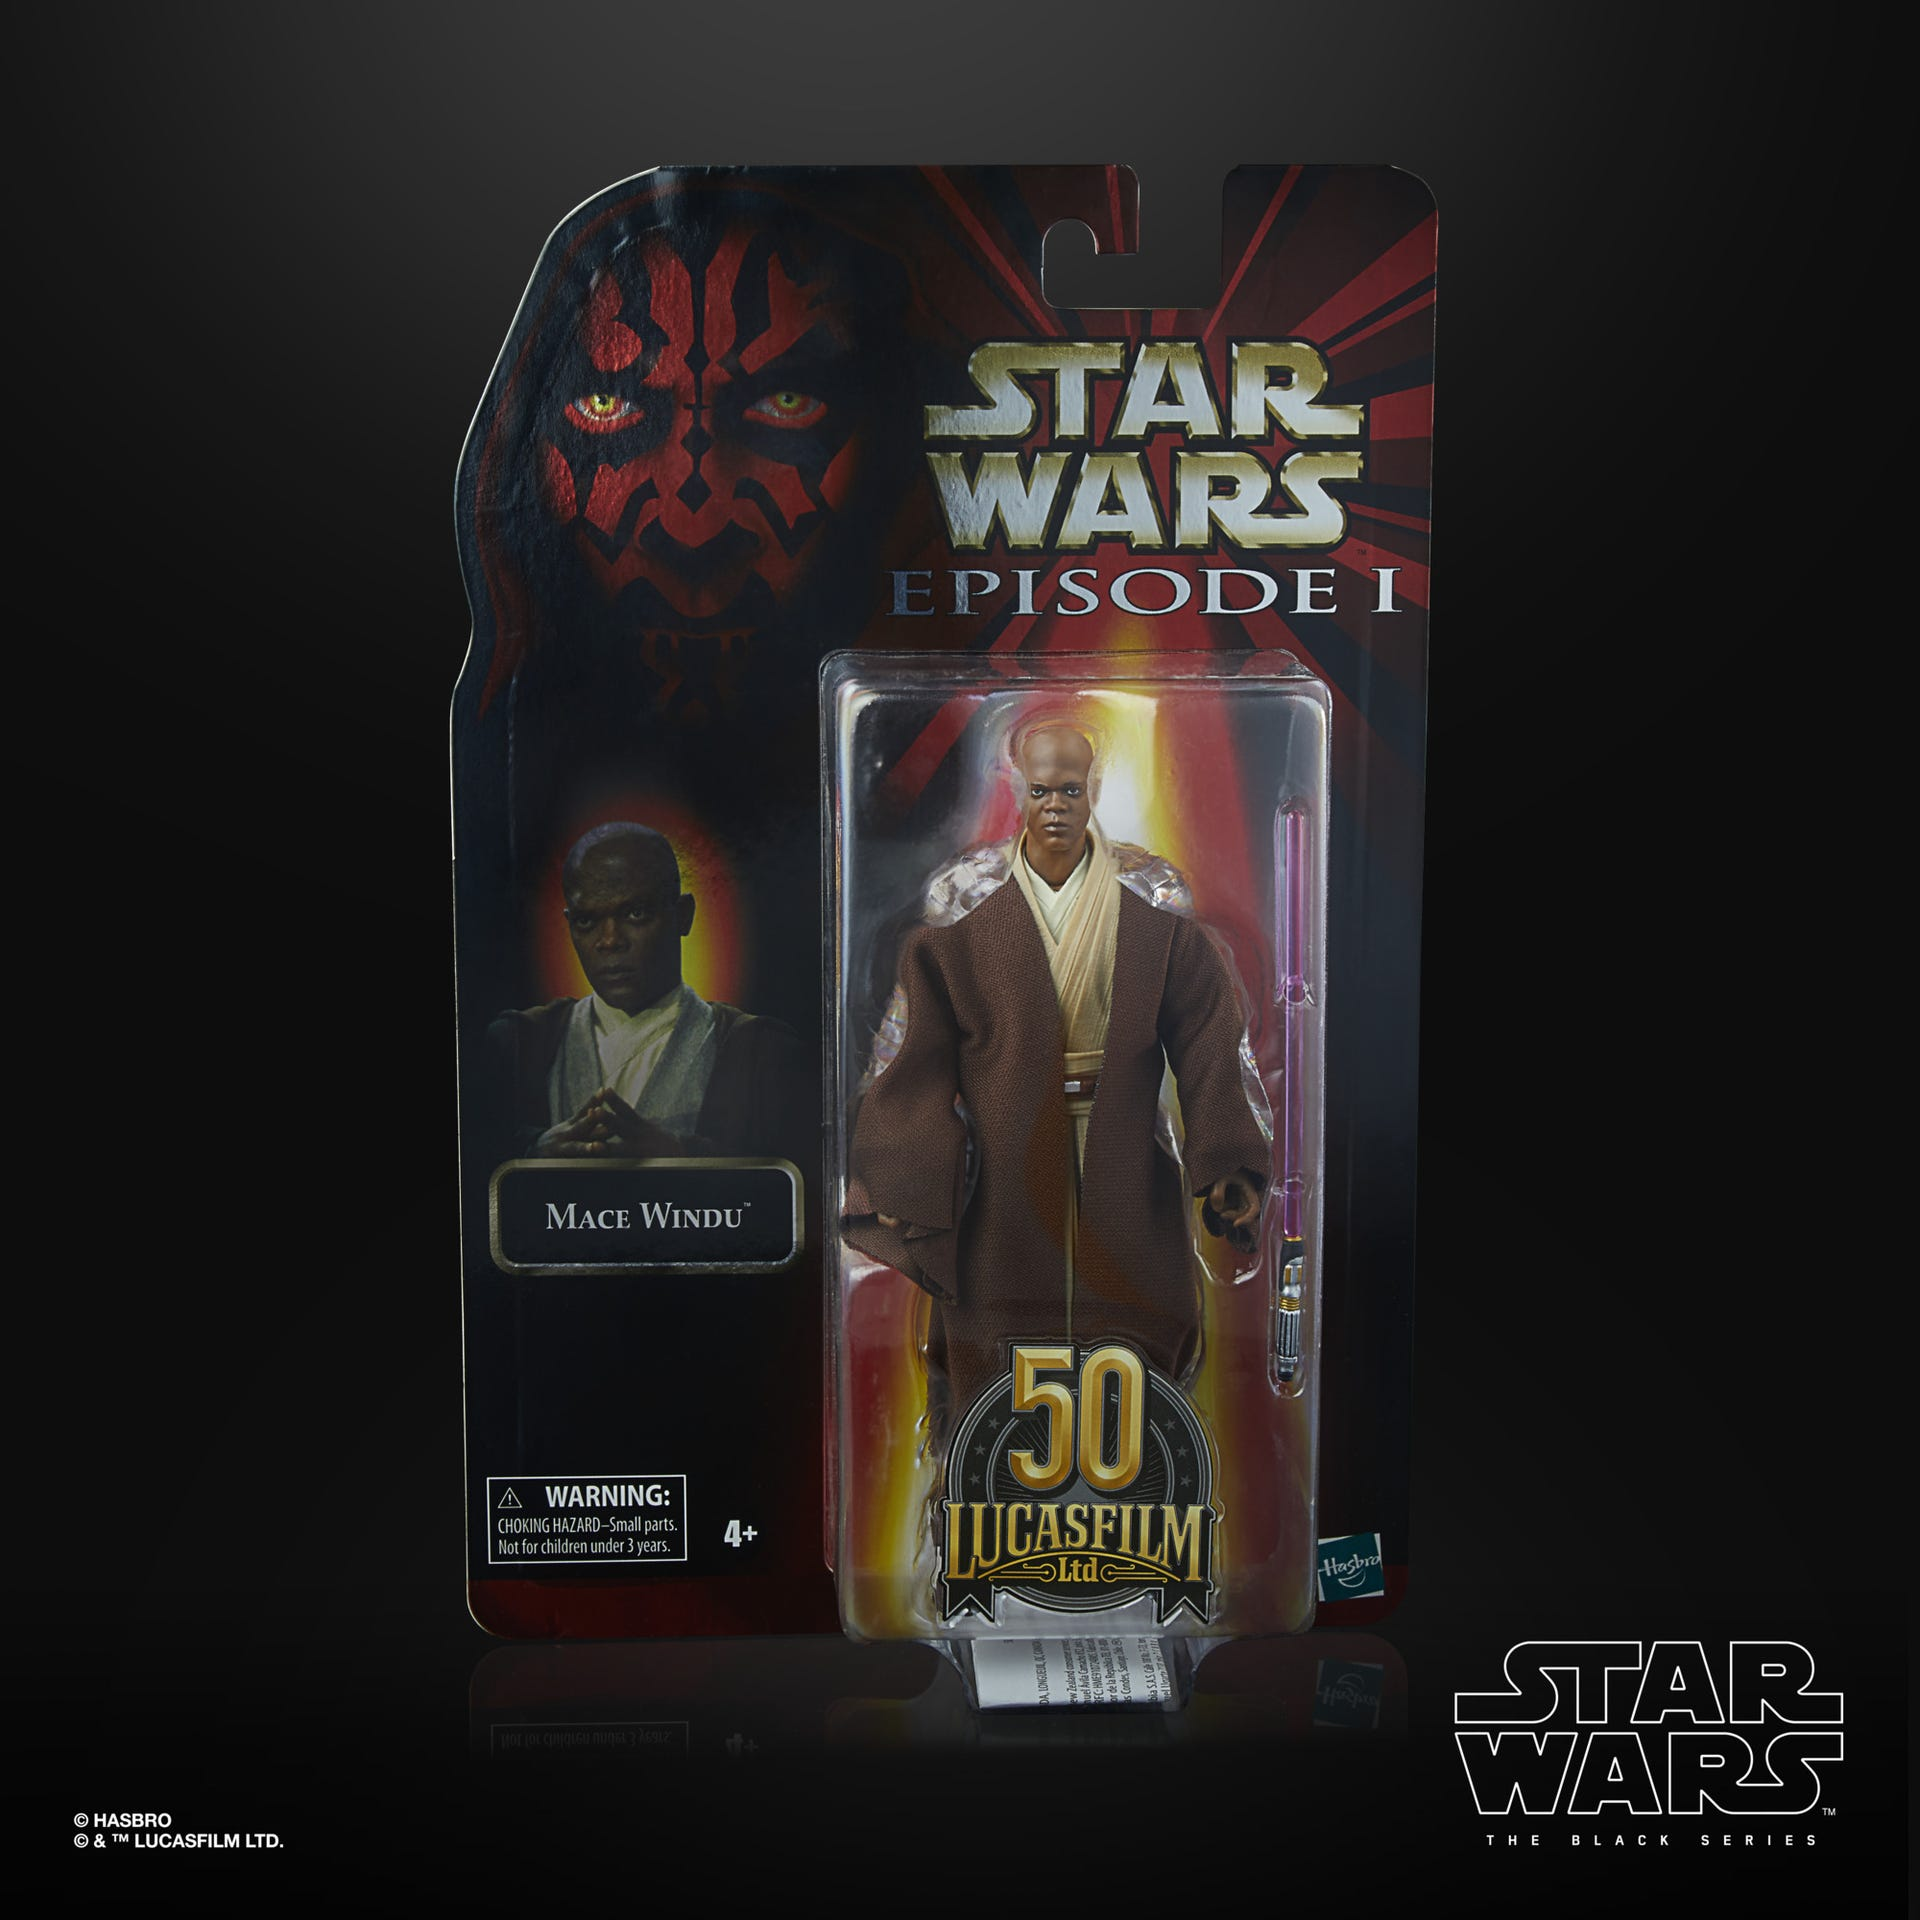 Star Wars The Black Series Mace Windu LUCASFILM 50TH ANNIVERSARY FIGUR - Preorder März 2021  F27325L00 5010993866168